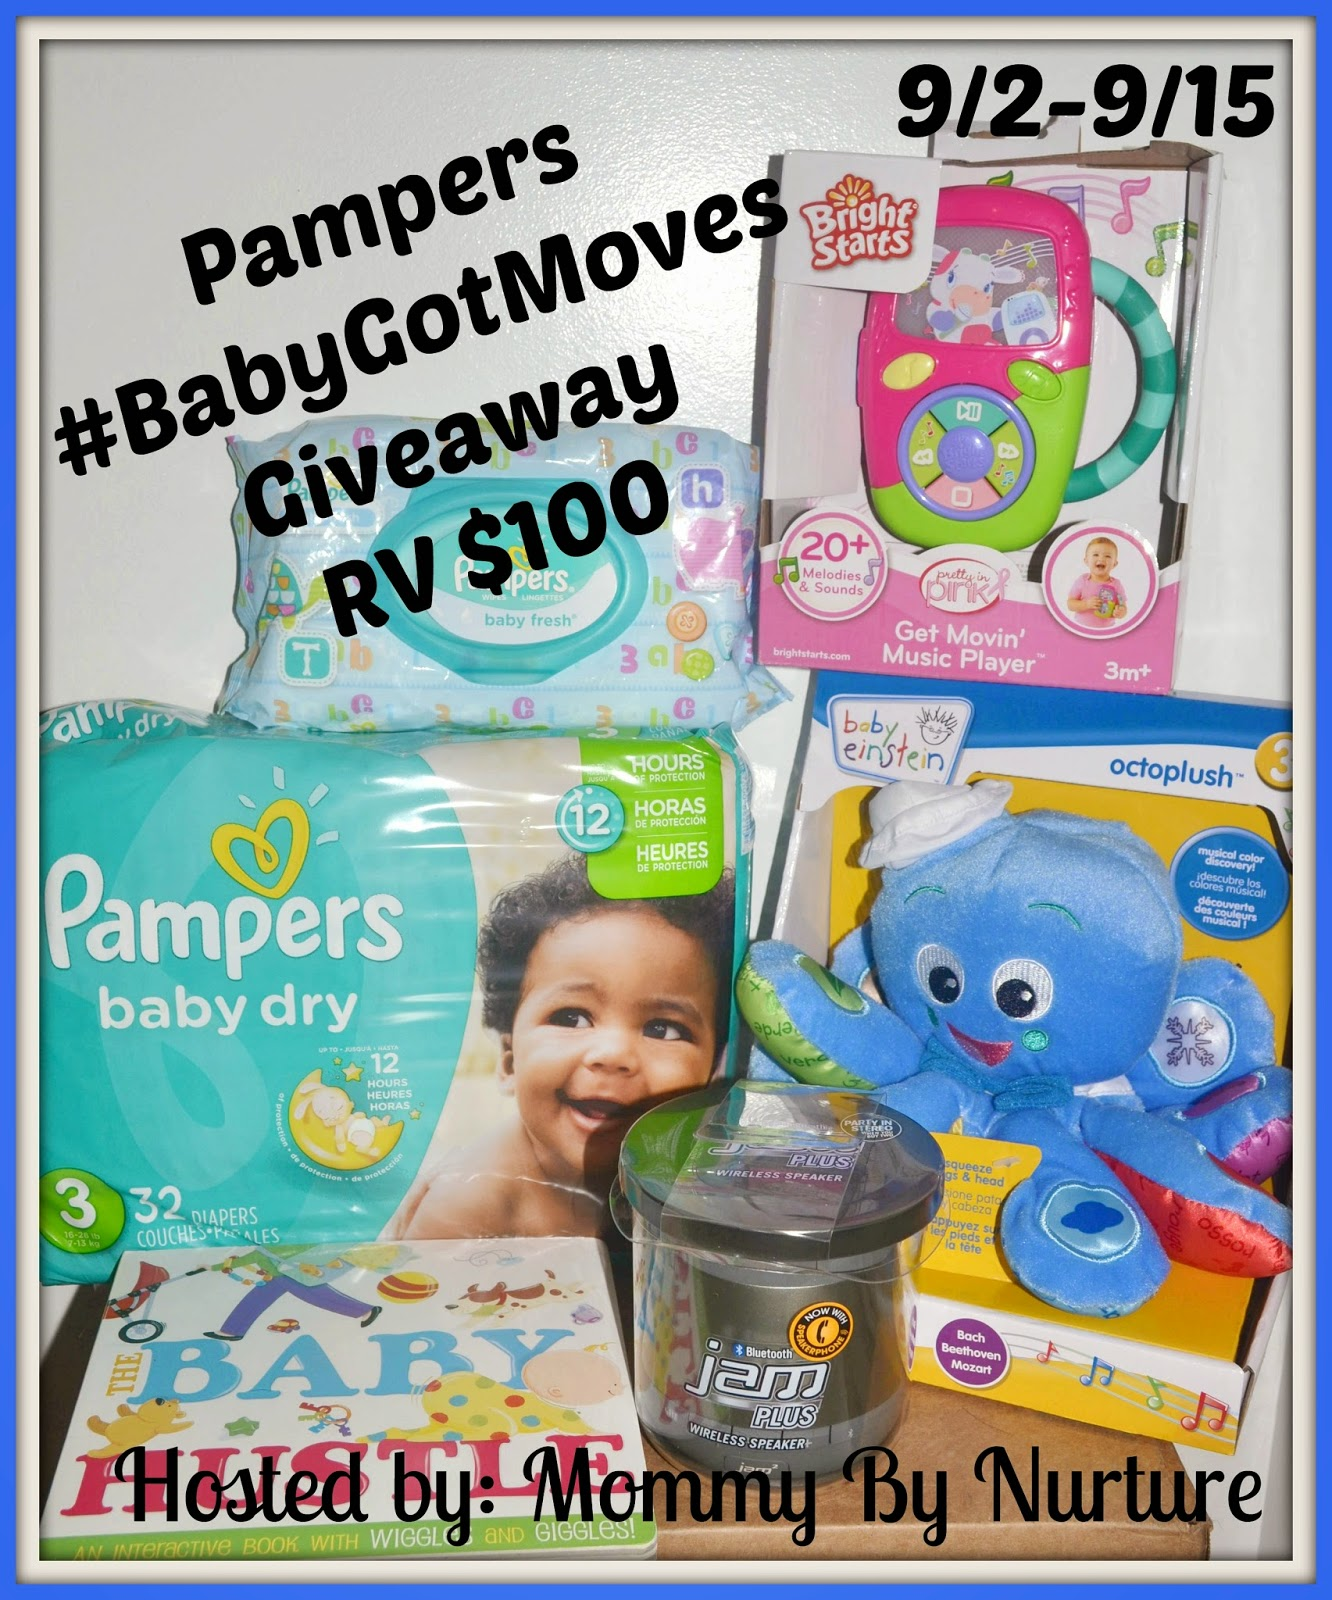 Pampers $100 Giveaway